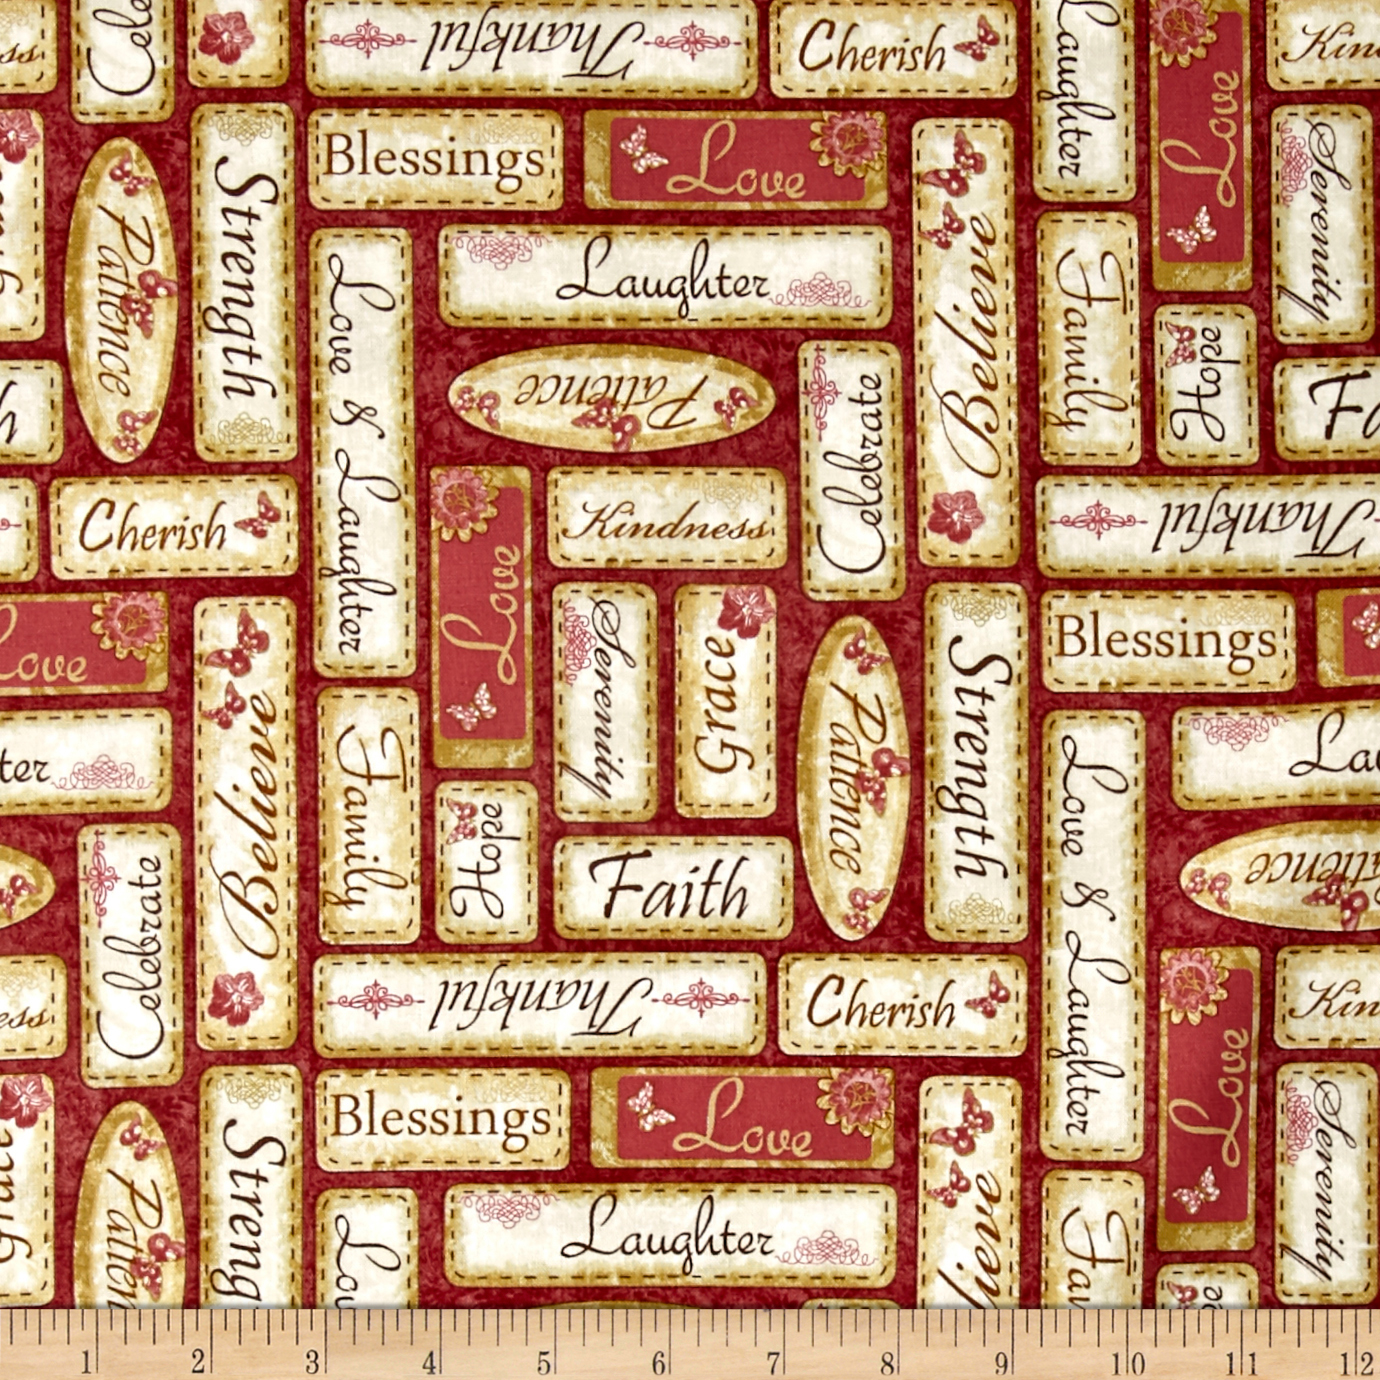 Simple Pleasures Words Red Fabric by Stardom Specialty in USA